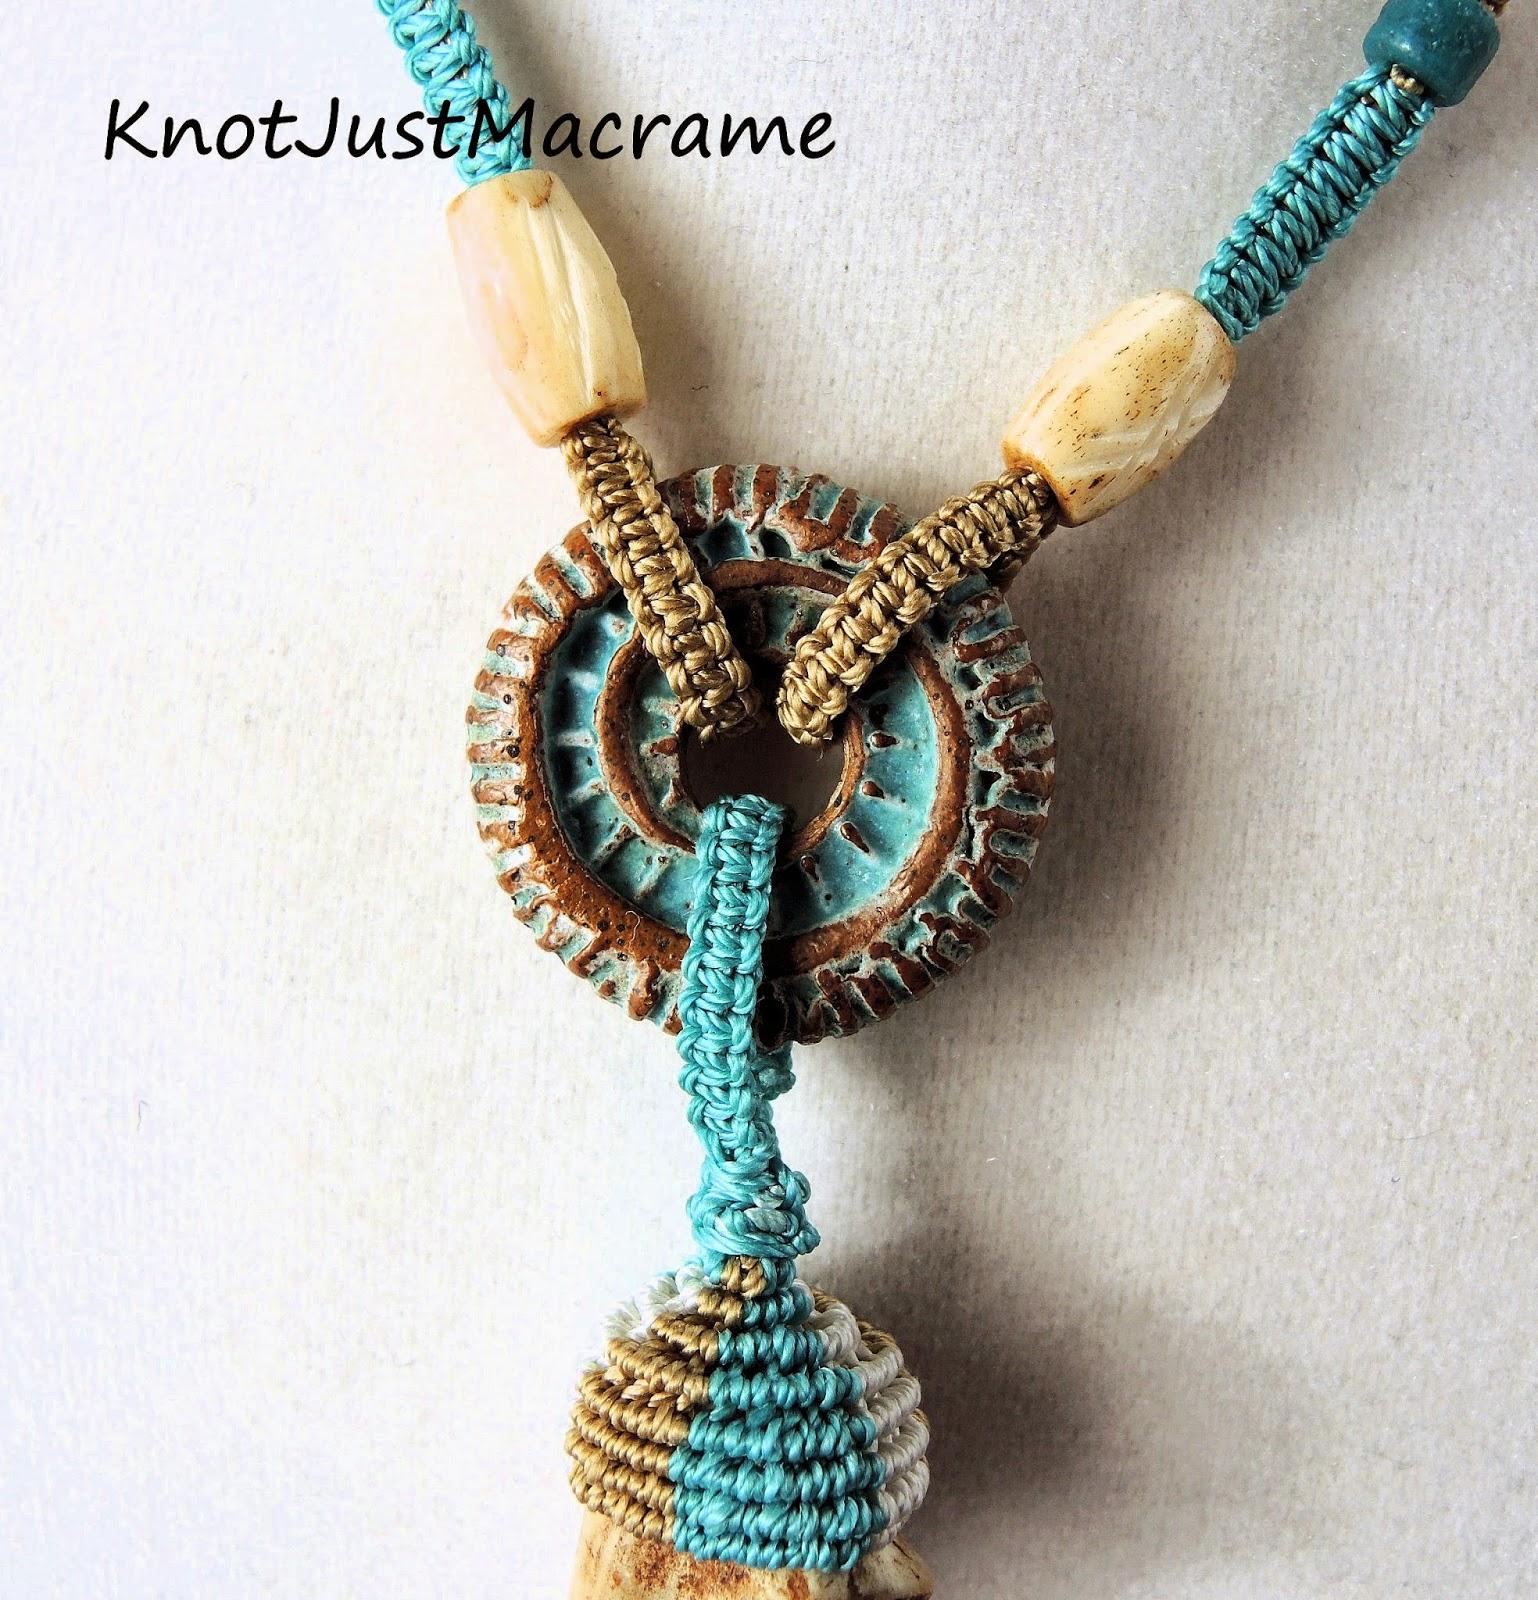 Macrame knotting attached to cermamic spiral fossil disc by Karren Totten.